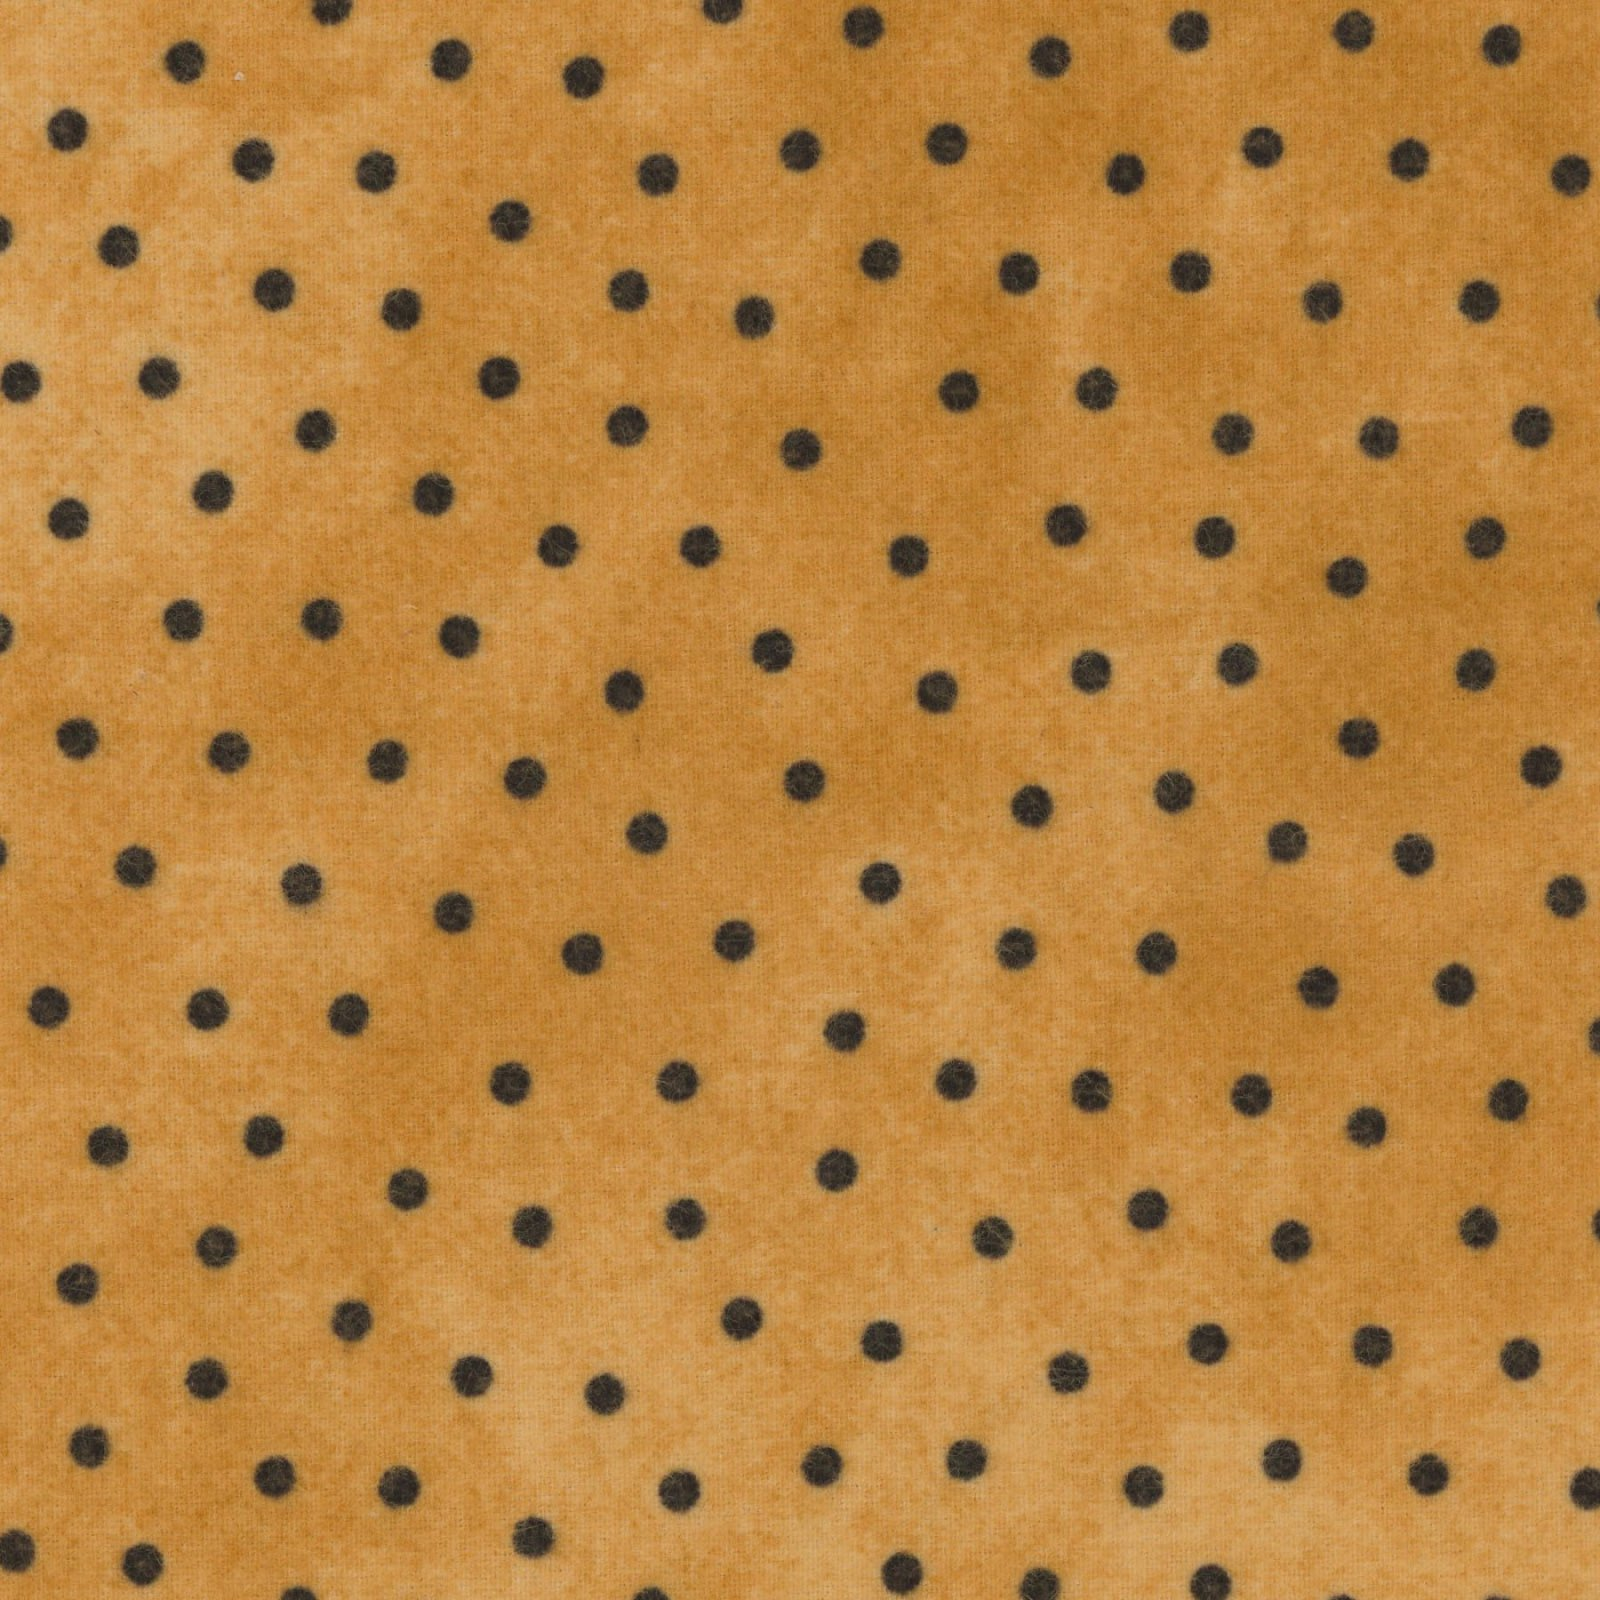 EES Maywood MASF18506-S woolies flannelgold w/black dots